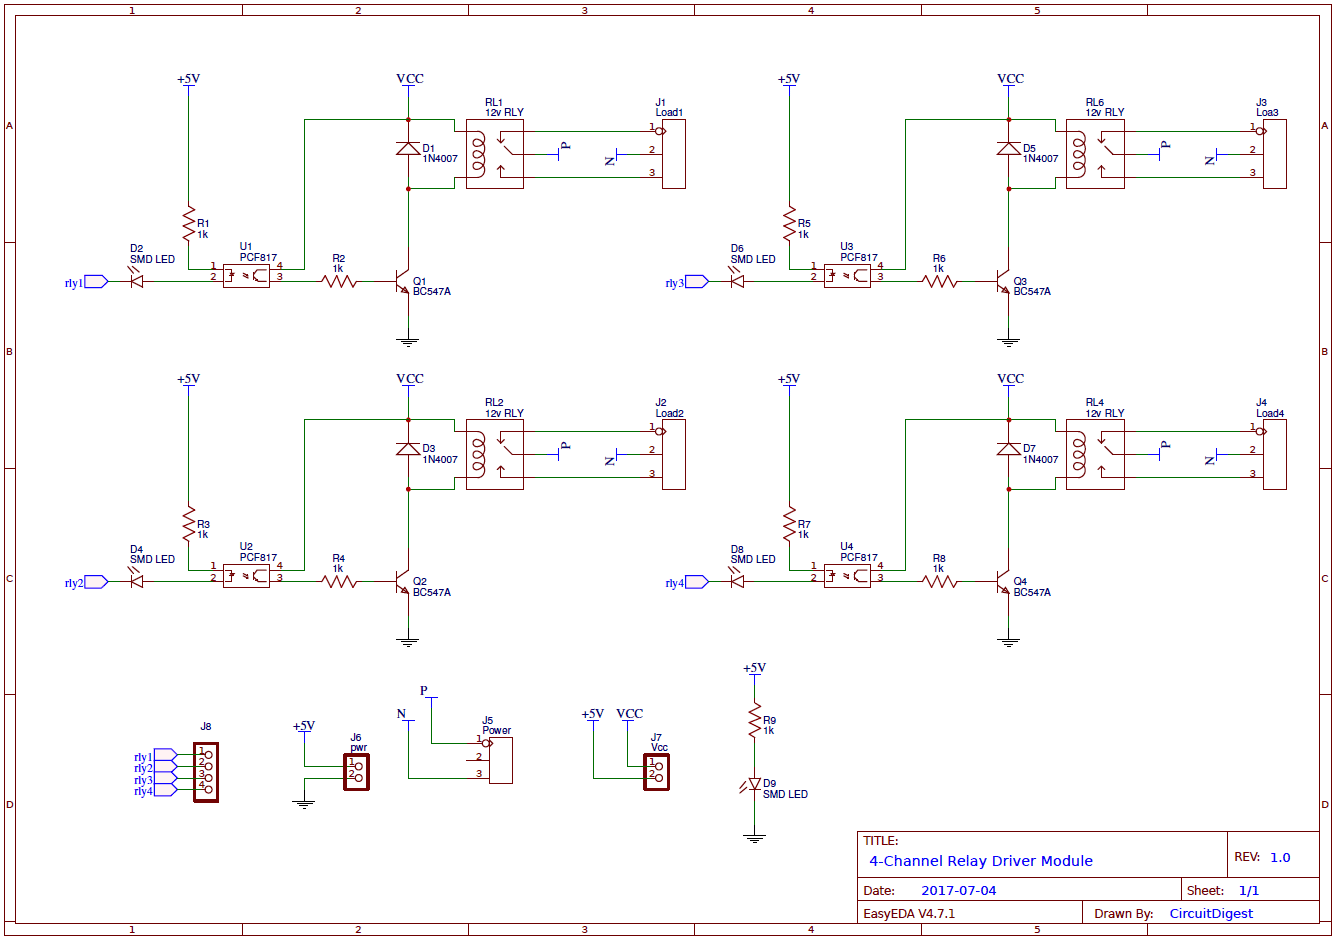 4-channel relay driver module circuit diagram